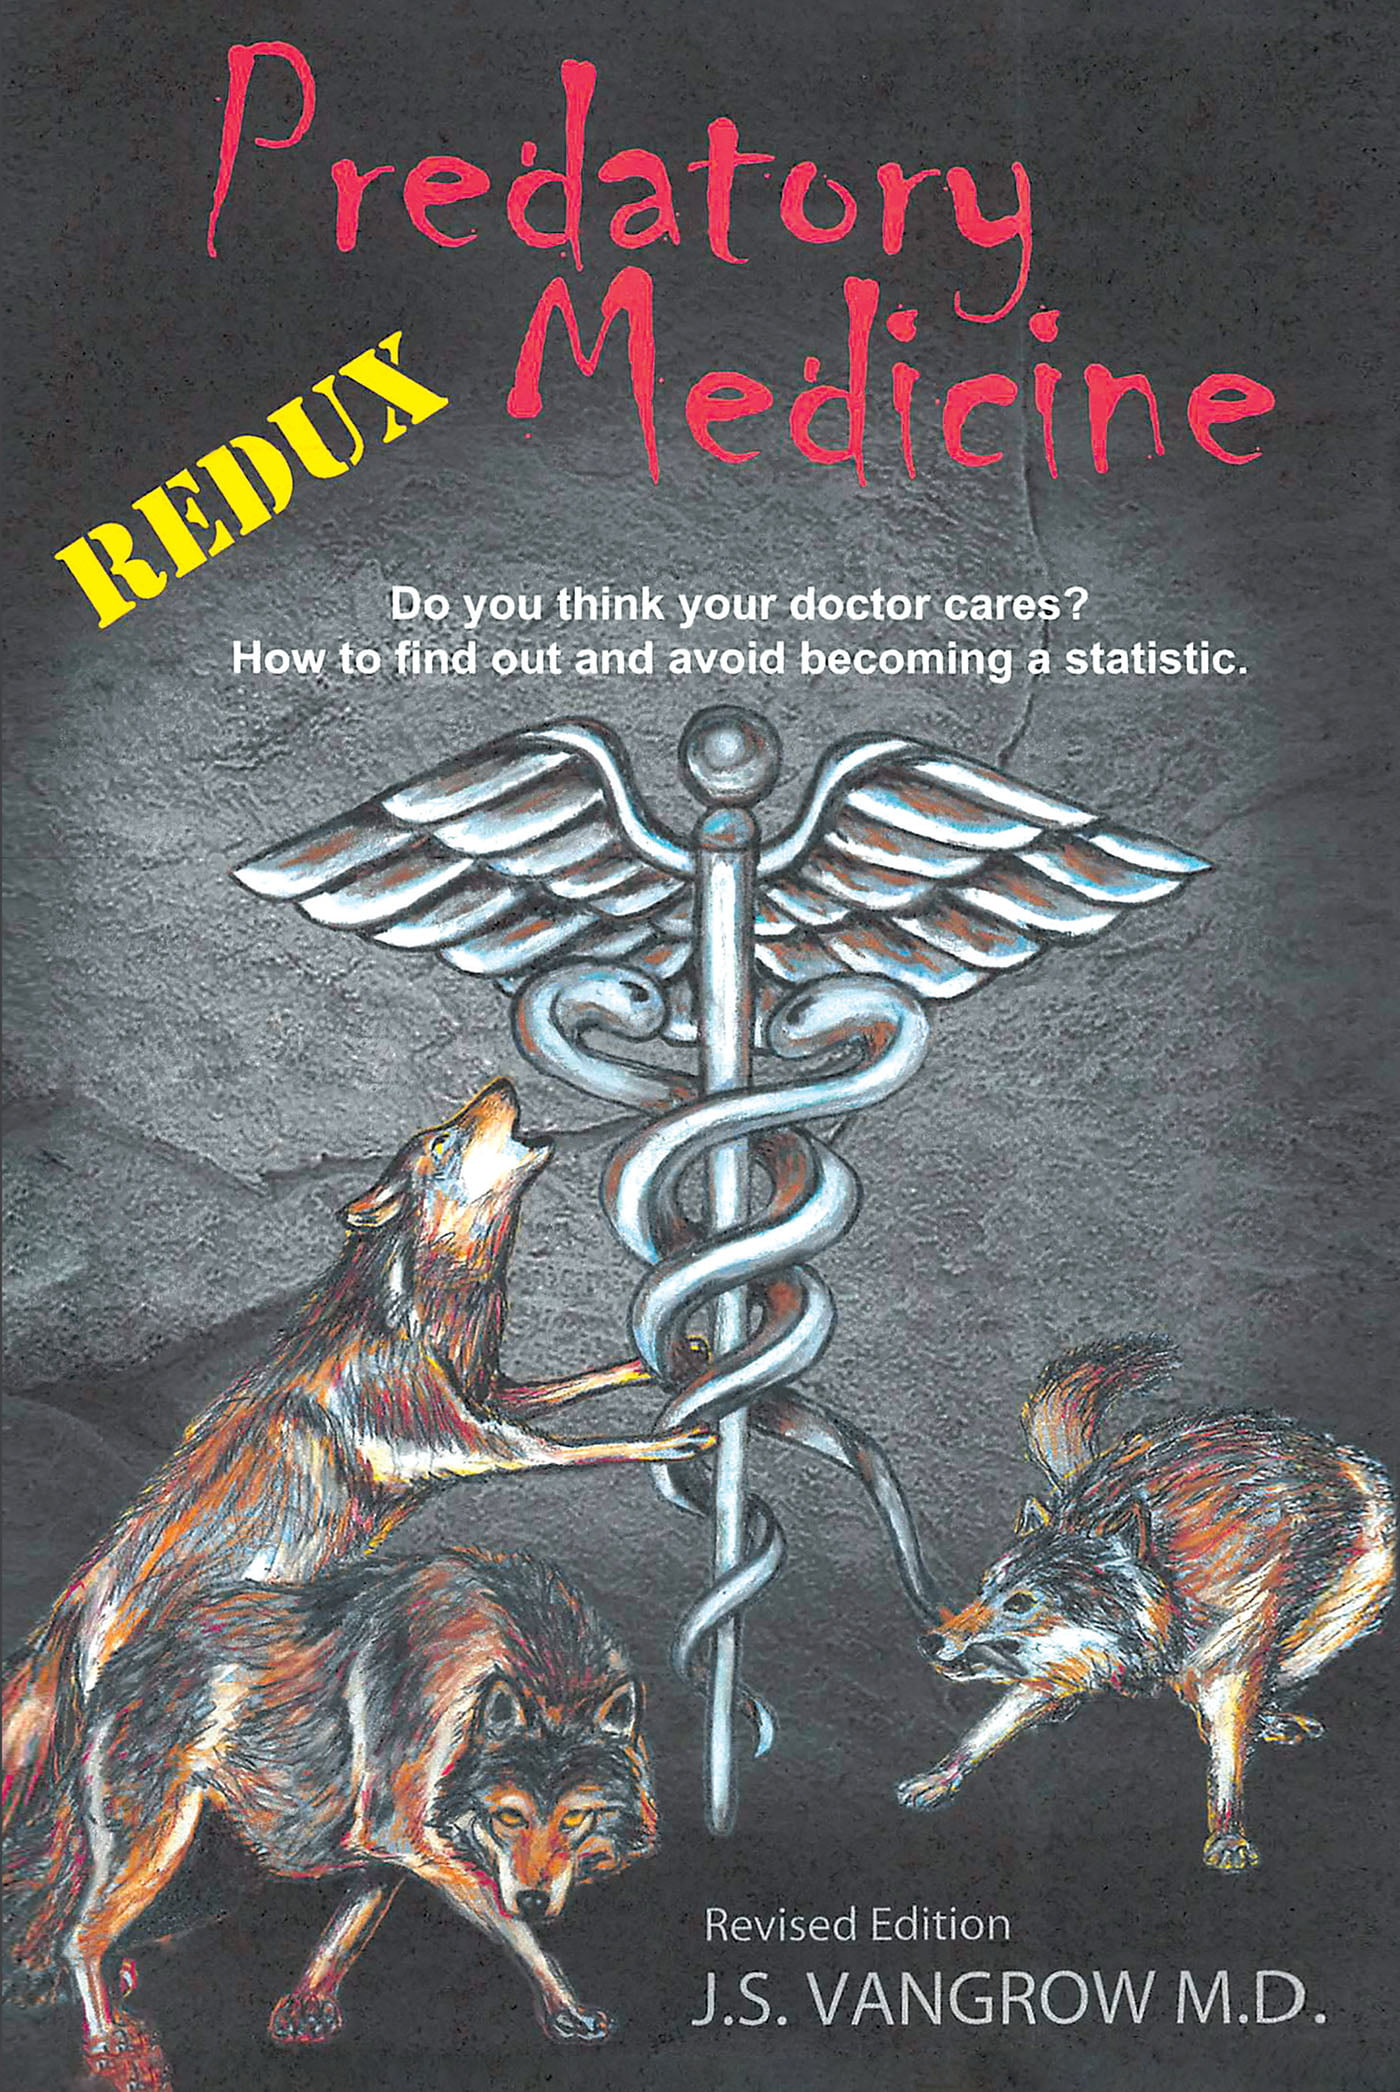 """Jack Vangrow's New Book """"Predatory Medicine Redux"""" is an Absolute Must Read for Anyone Adrift and Drowning Amongst the Murky Waters Known as Health Care"""